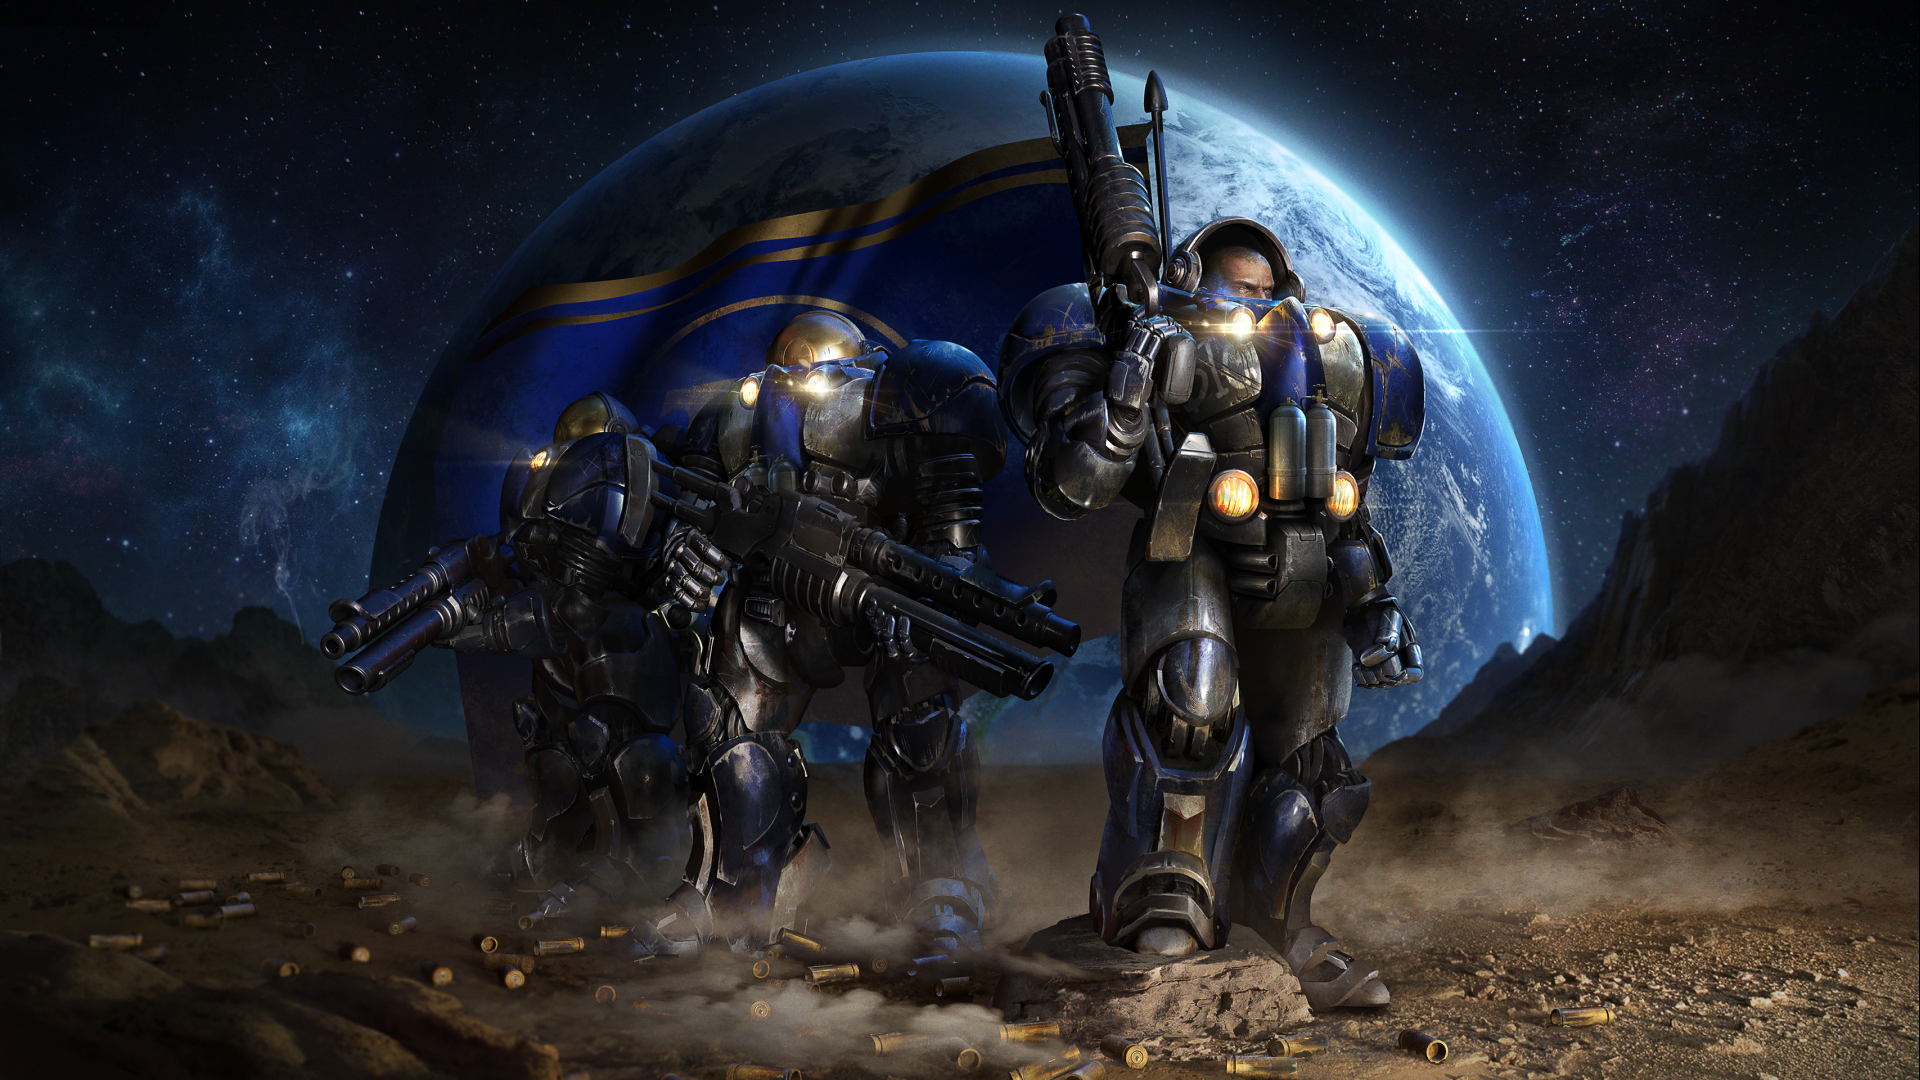 Wallpapers Ready #games #starcraft #